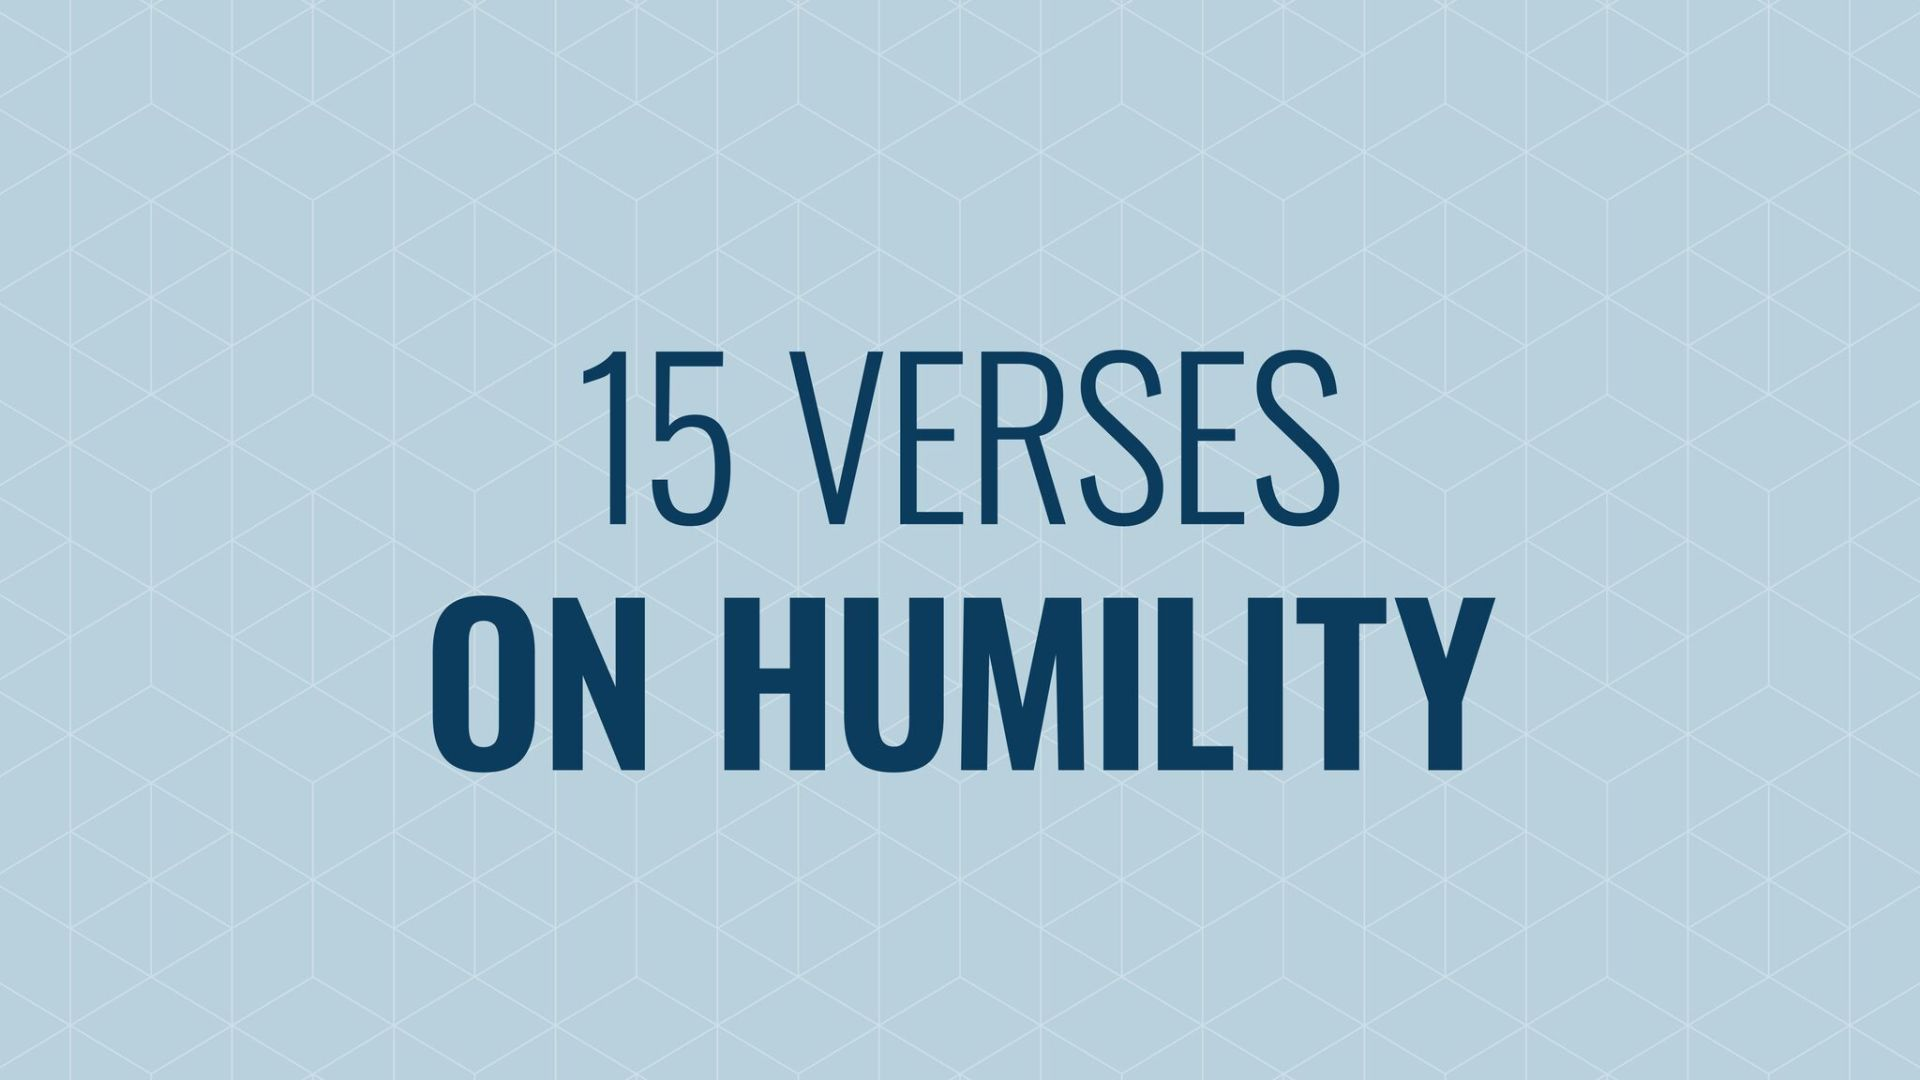 Walking in Humility: 15 Verses to Help Hero Image